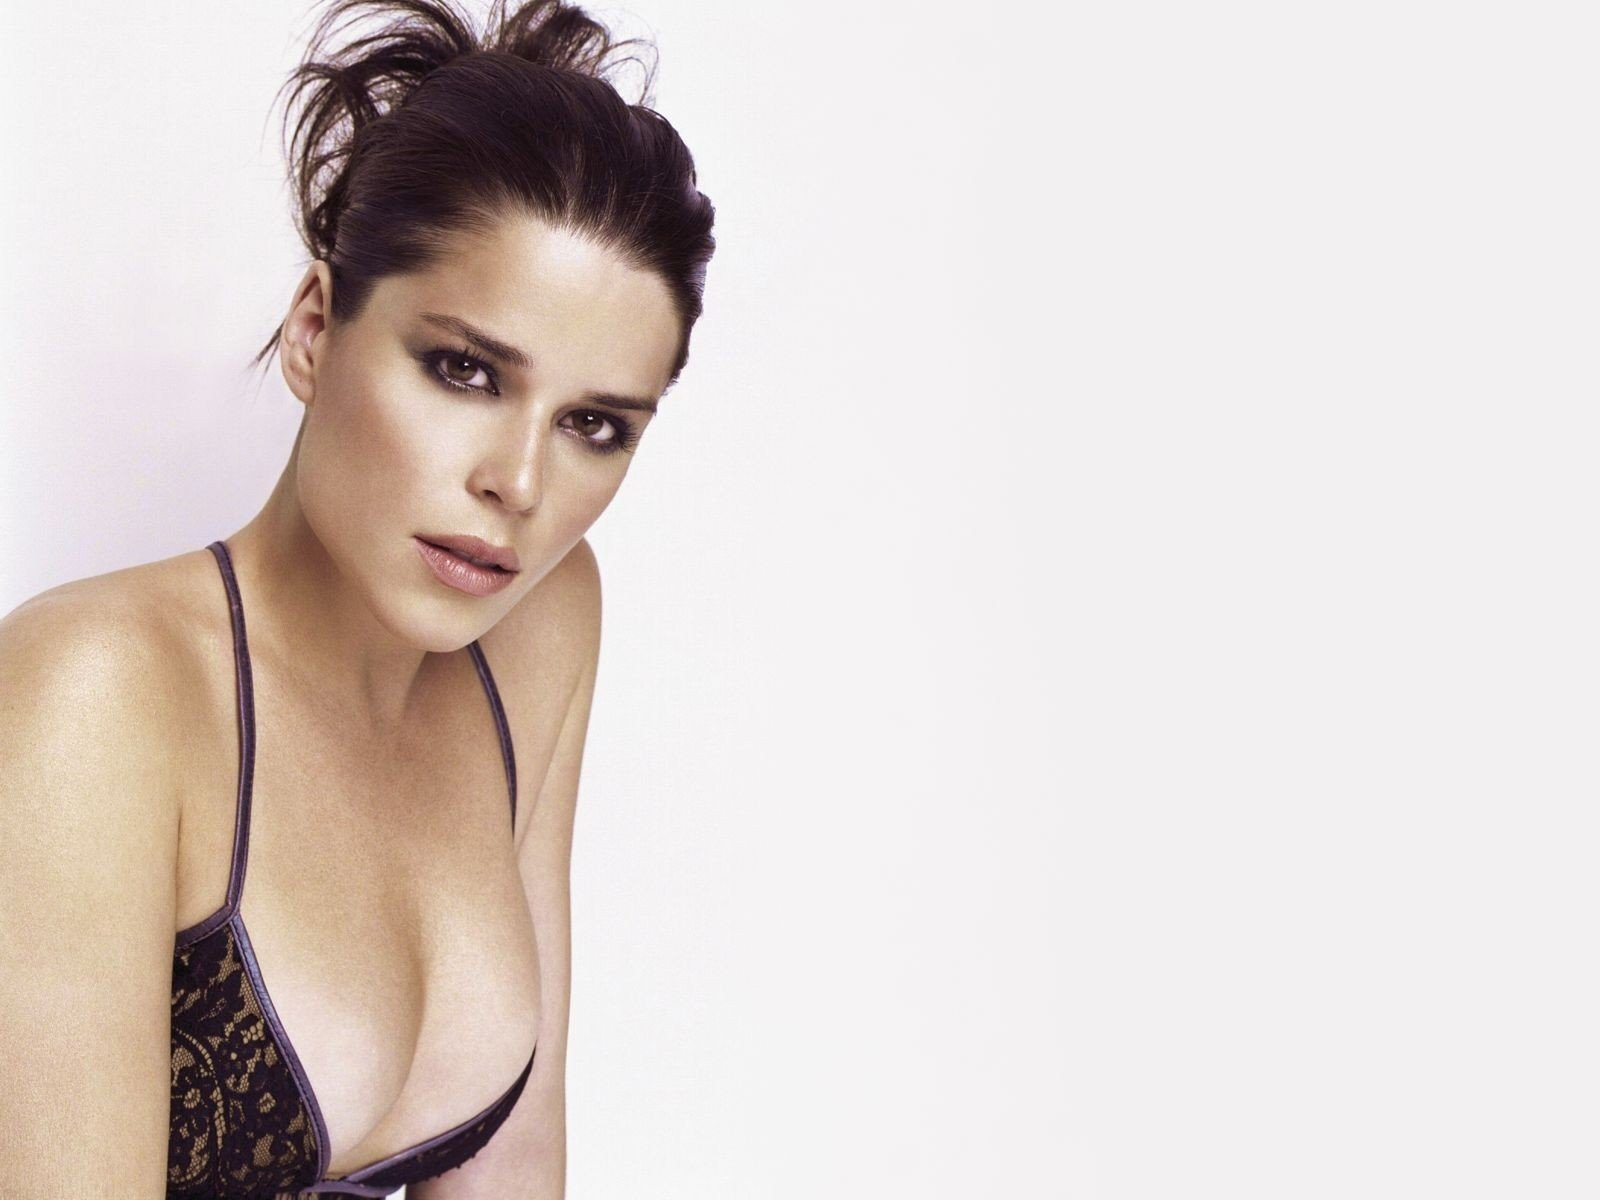 Wallpaper - decolletè da capogiro per Neve Campbell